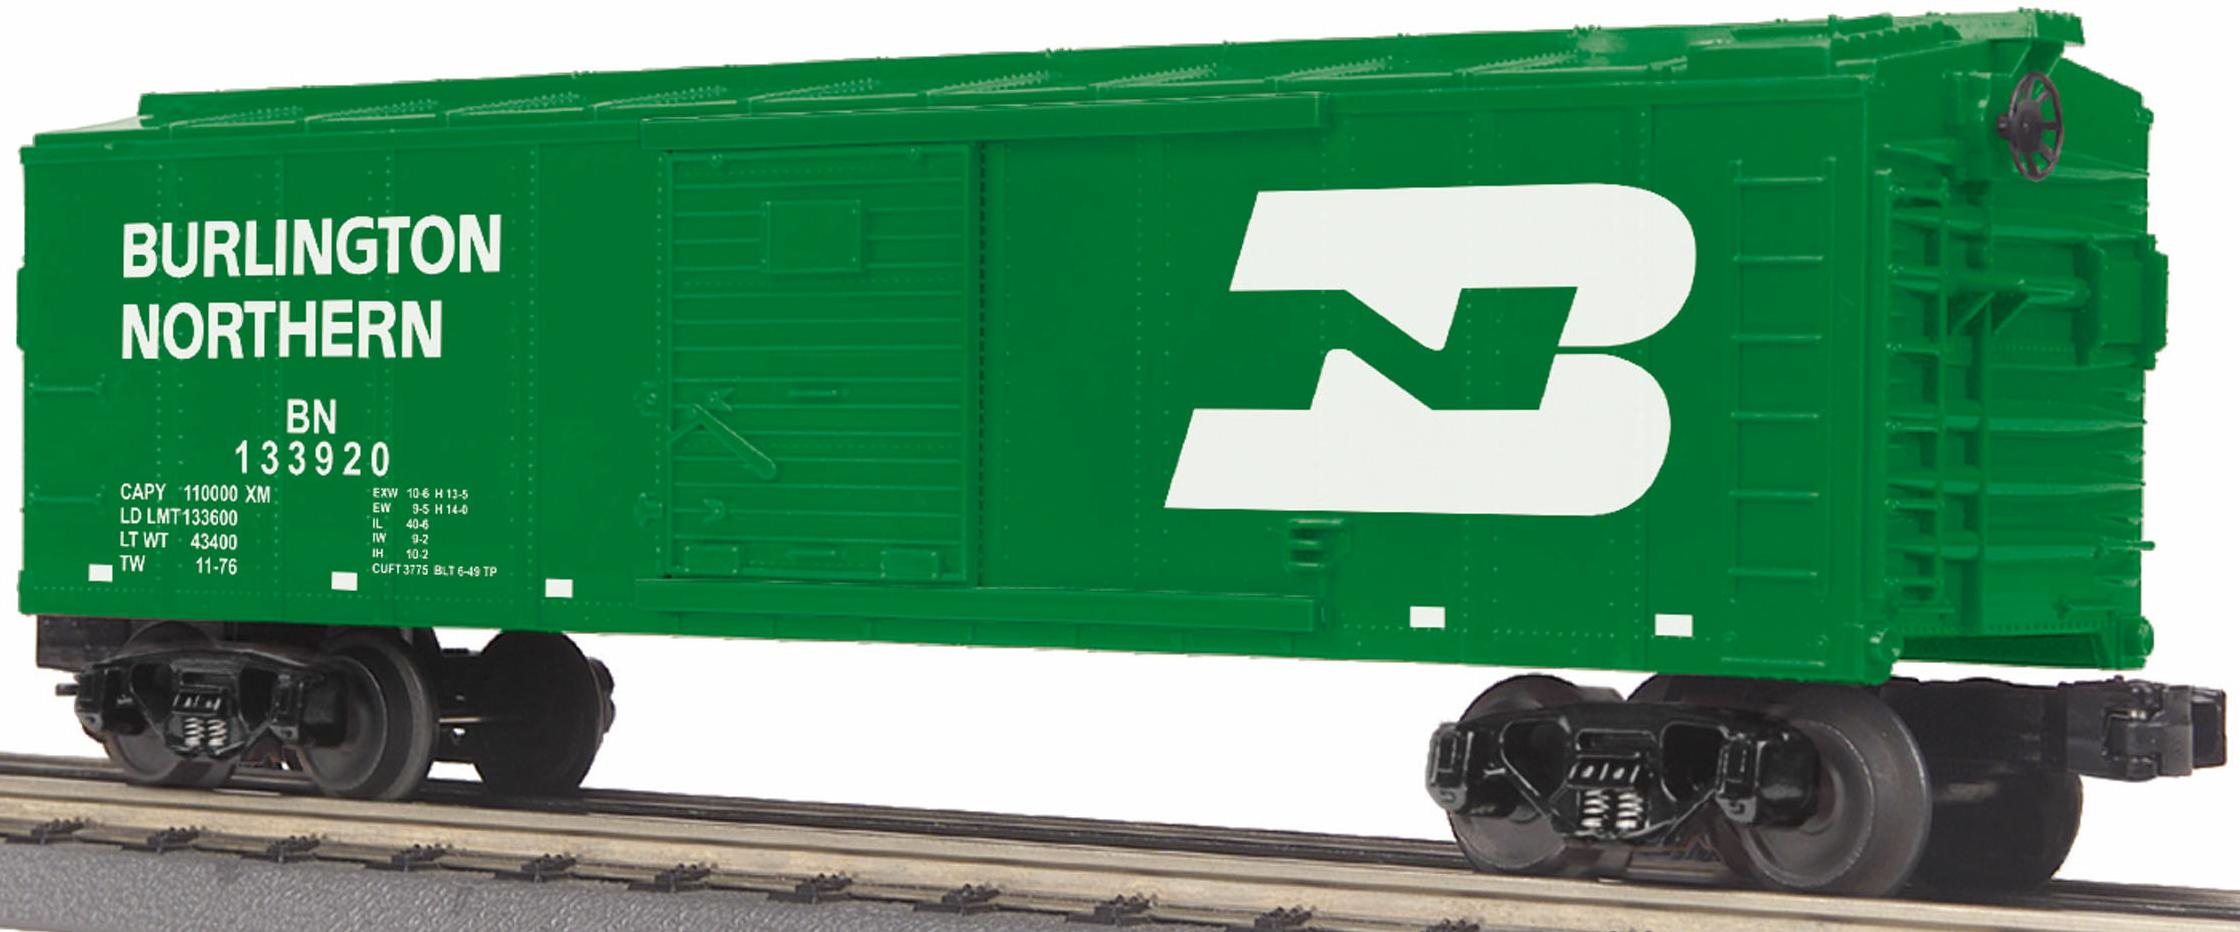 Burlington Northern Box Car image